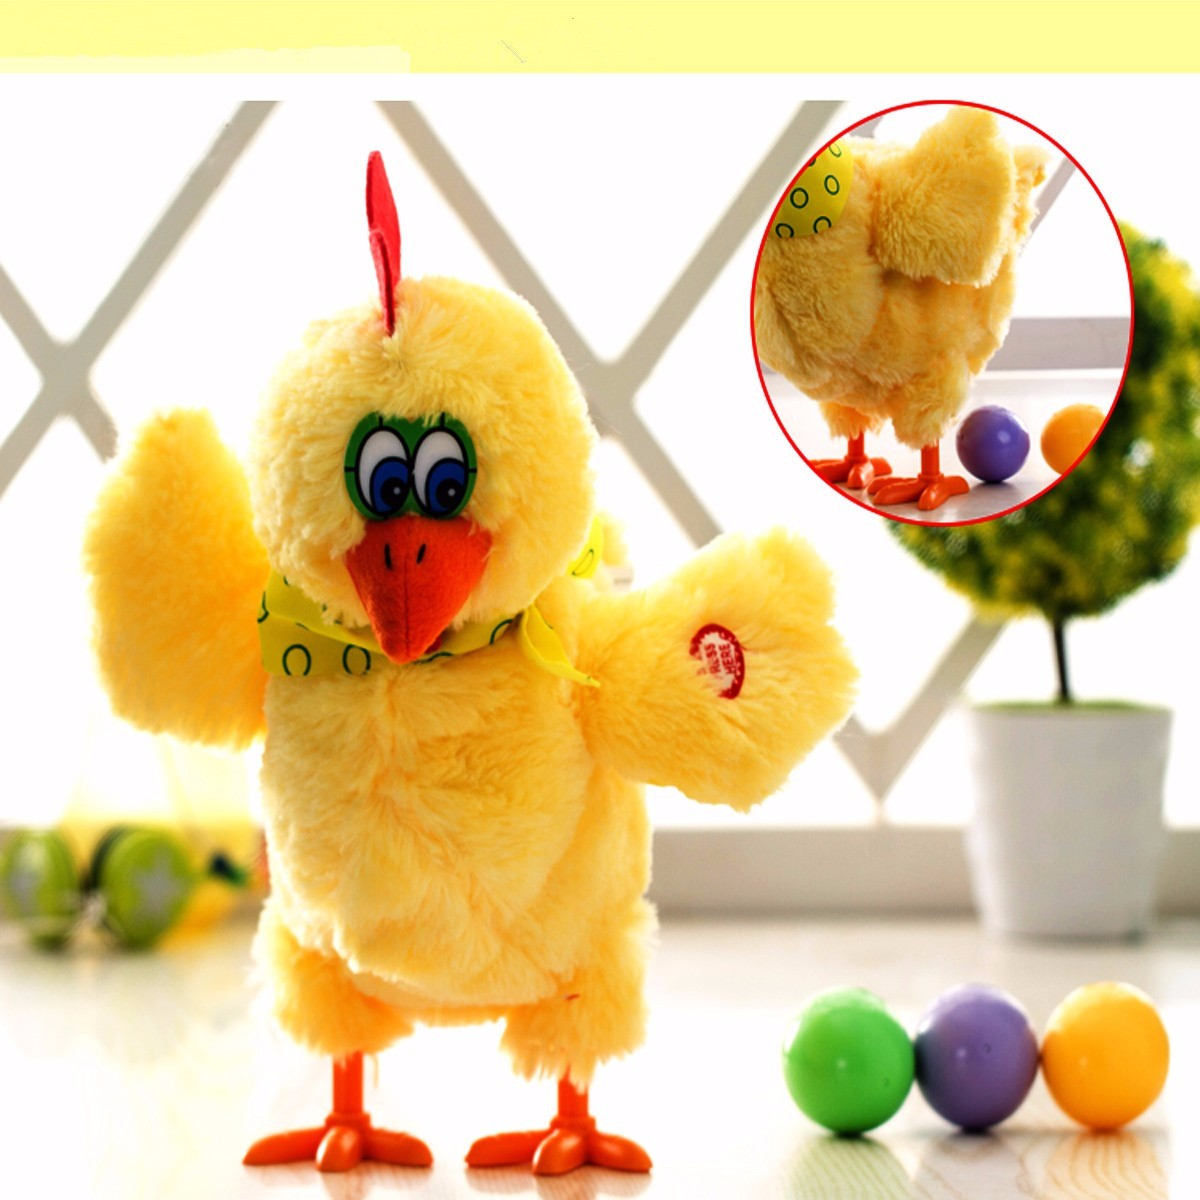 Newest Electric Musical Dancing Laying Eggs Funny Educational Baby Kid Toy Chickens Crazy Singing Dancing Electric Pet Plush Toy(China (Mainland))